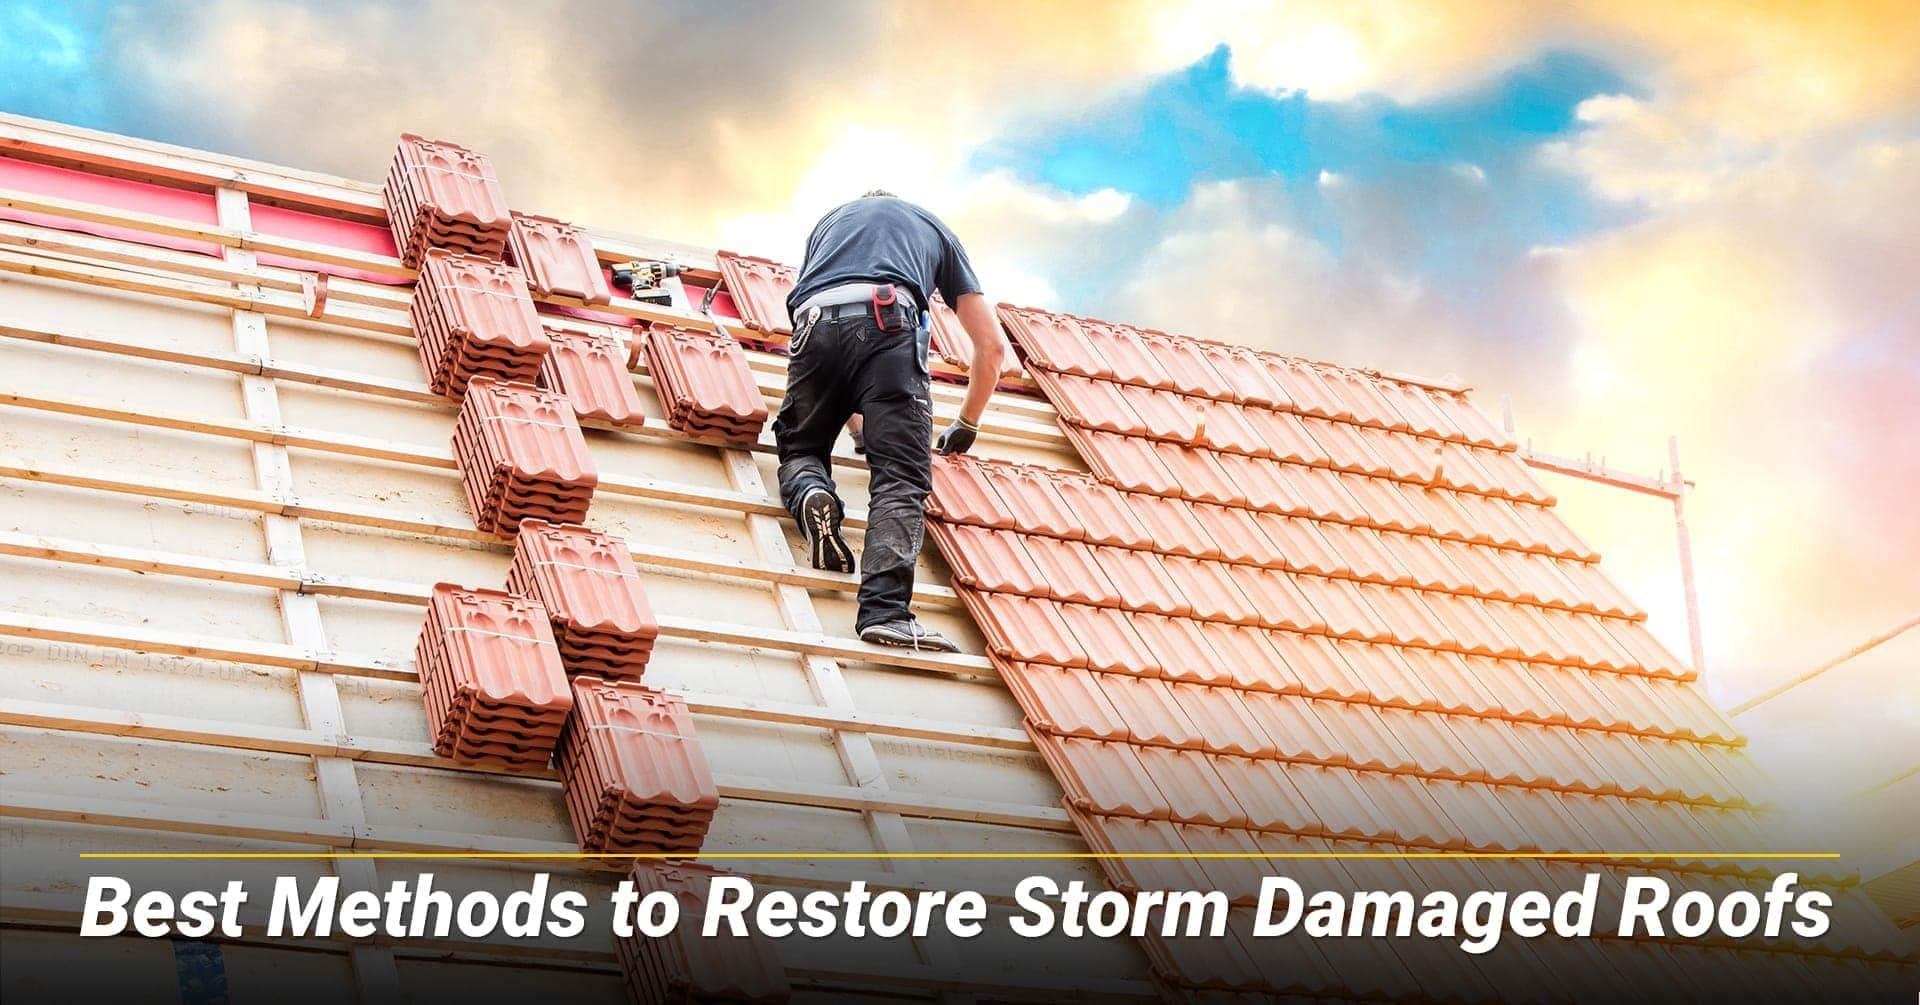 Best Methods to Restore Storm Damaged Roofs, ways to restore damaged roof